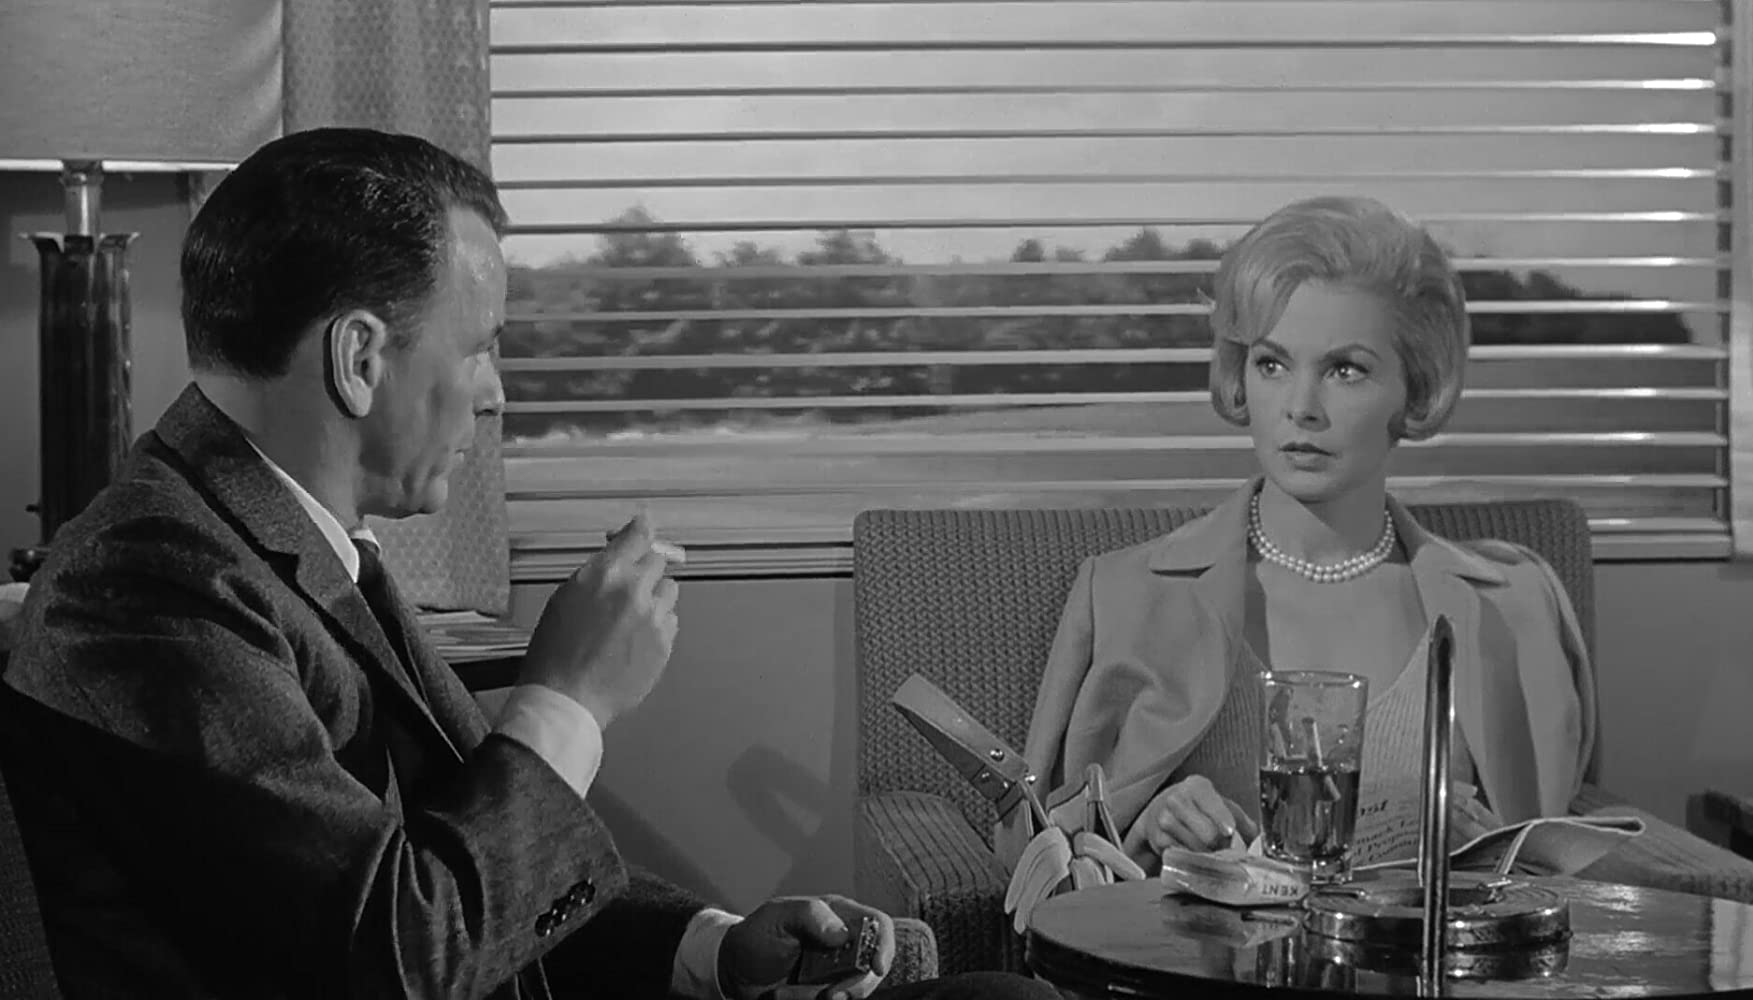 Frank Sinatra and Janet Leigh in The Manchurian Candidate (1962)